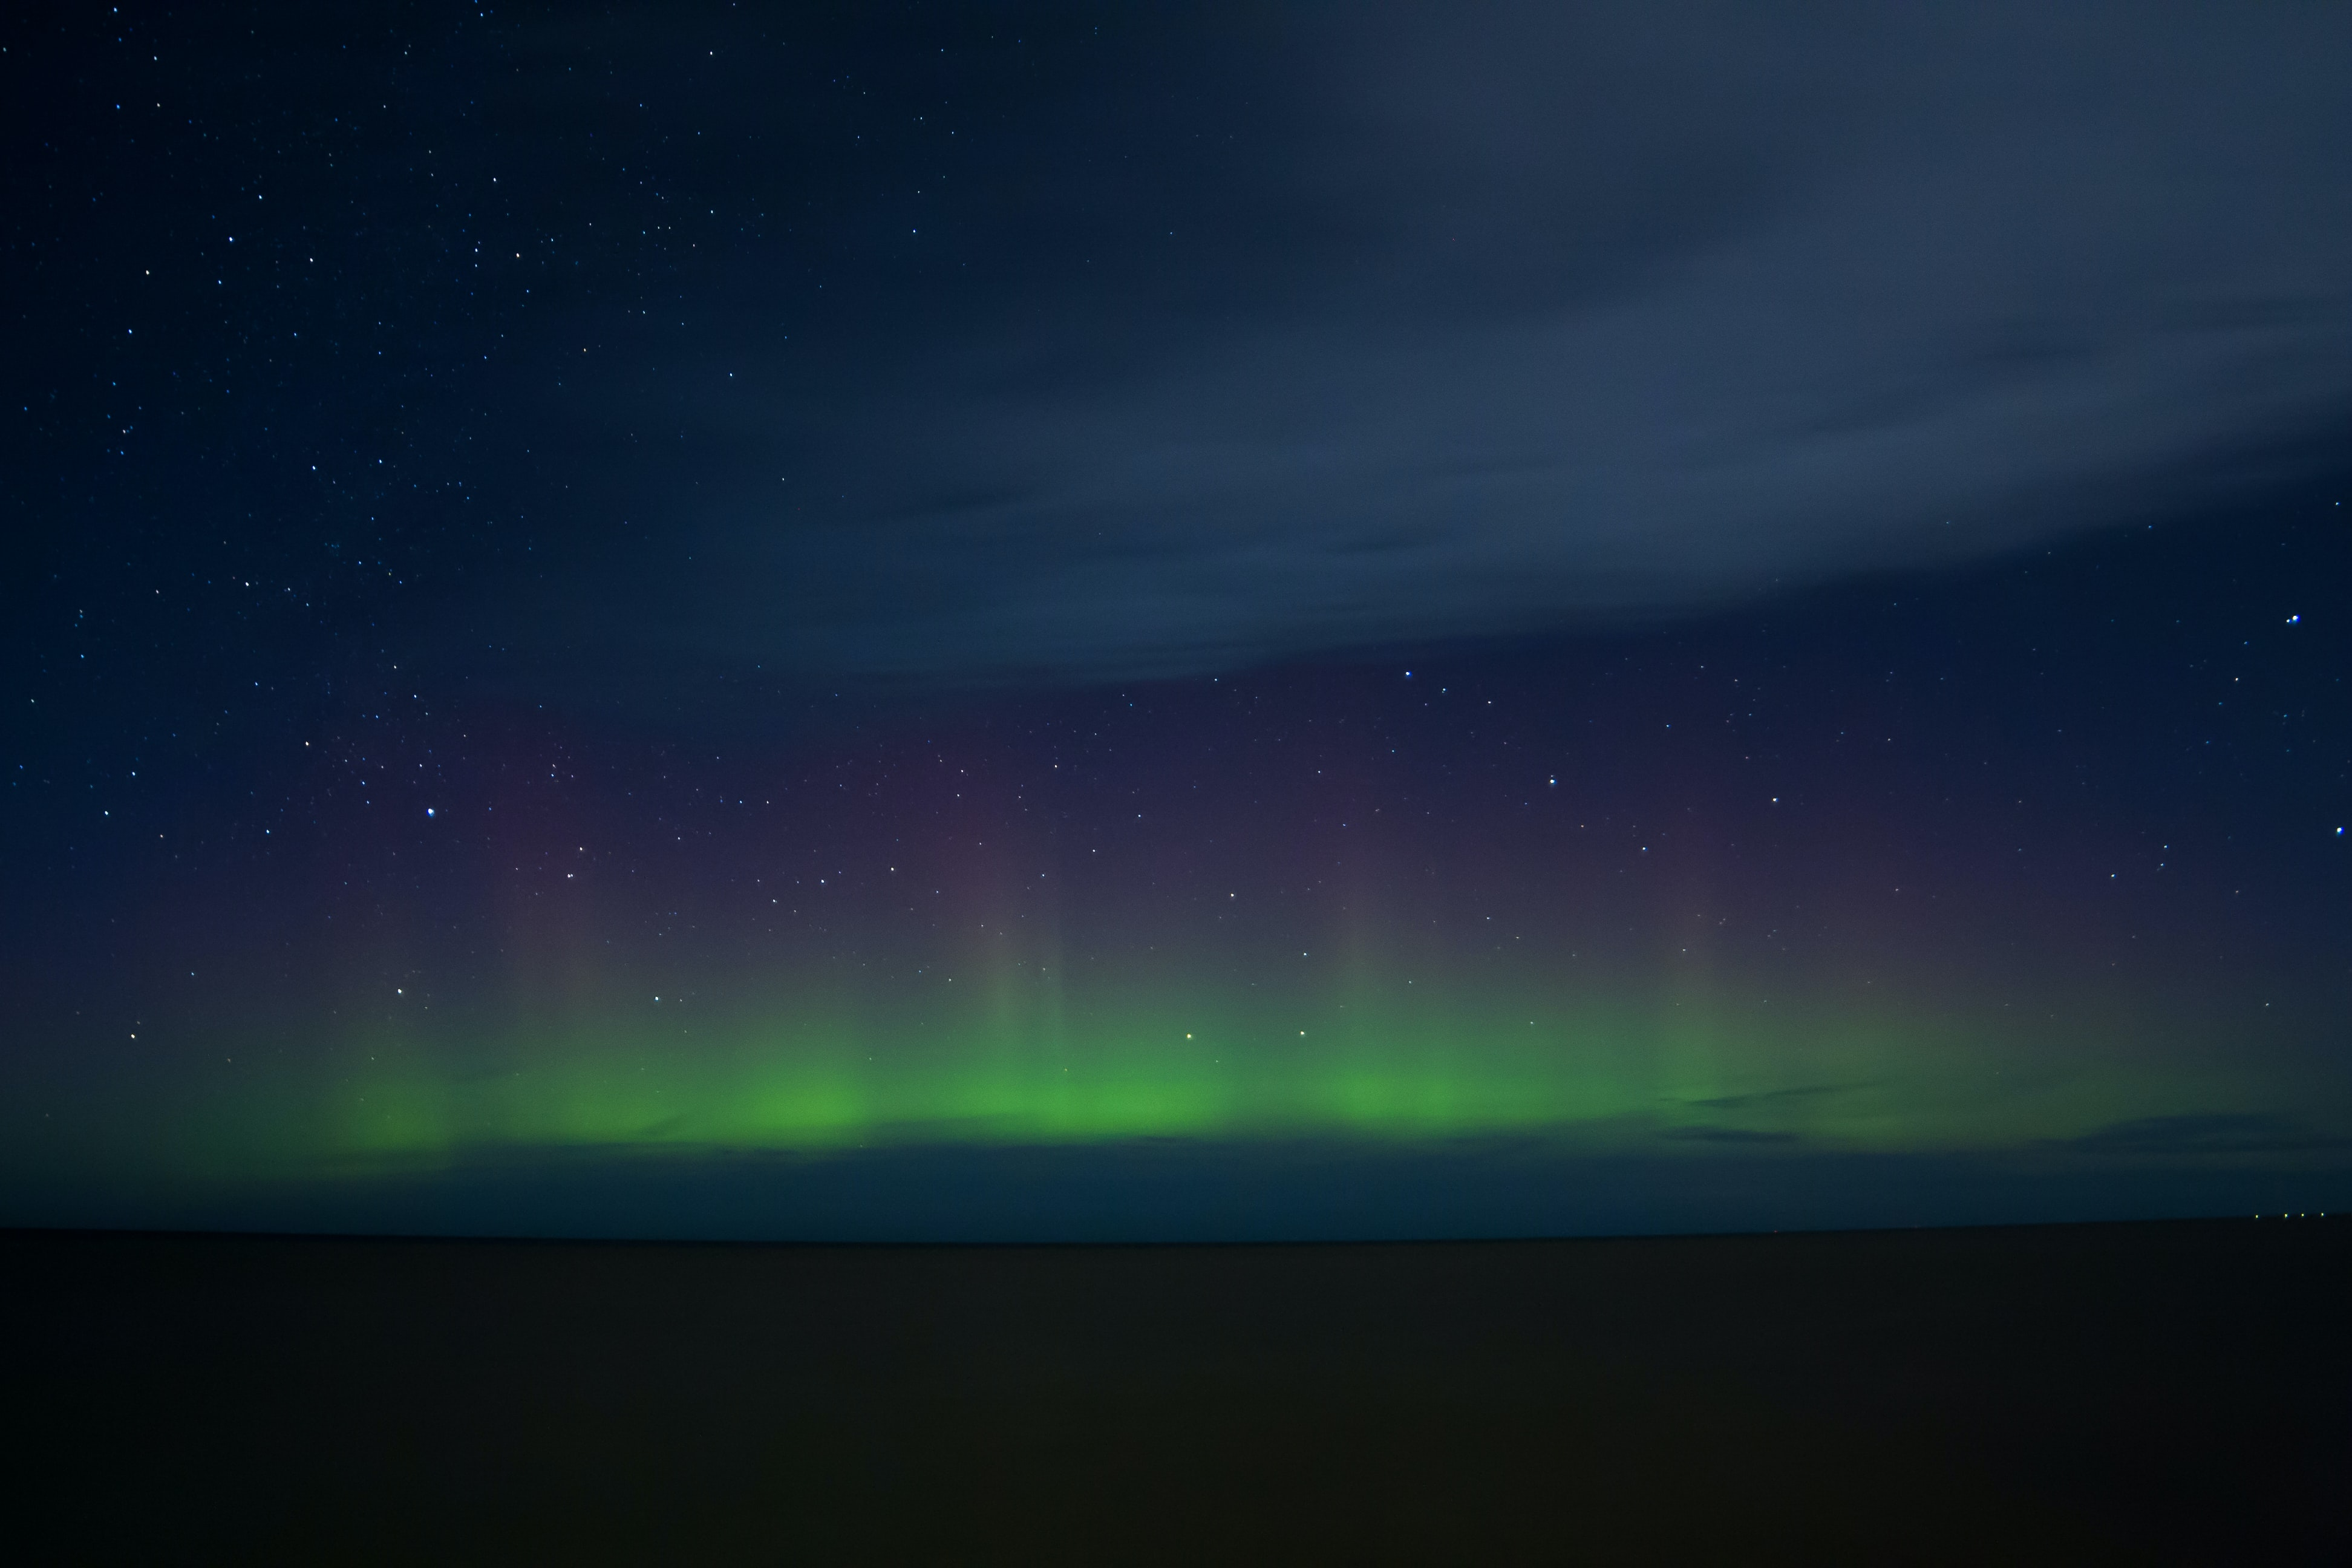 The Northern Lights across the sky as seen in Ontario.